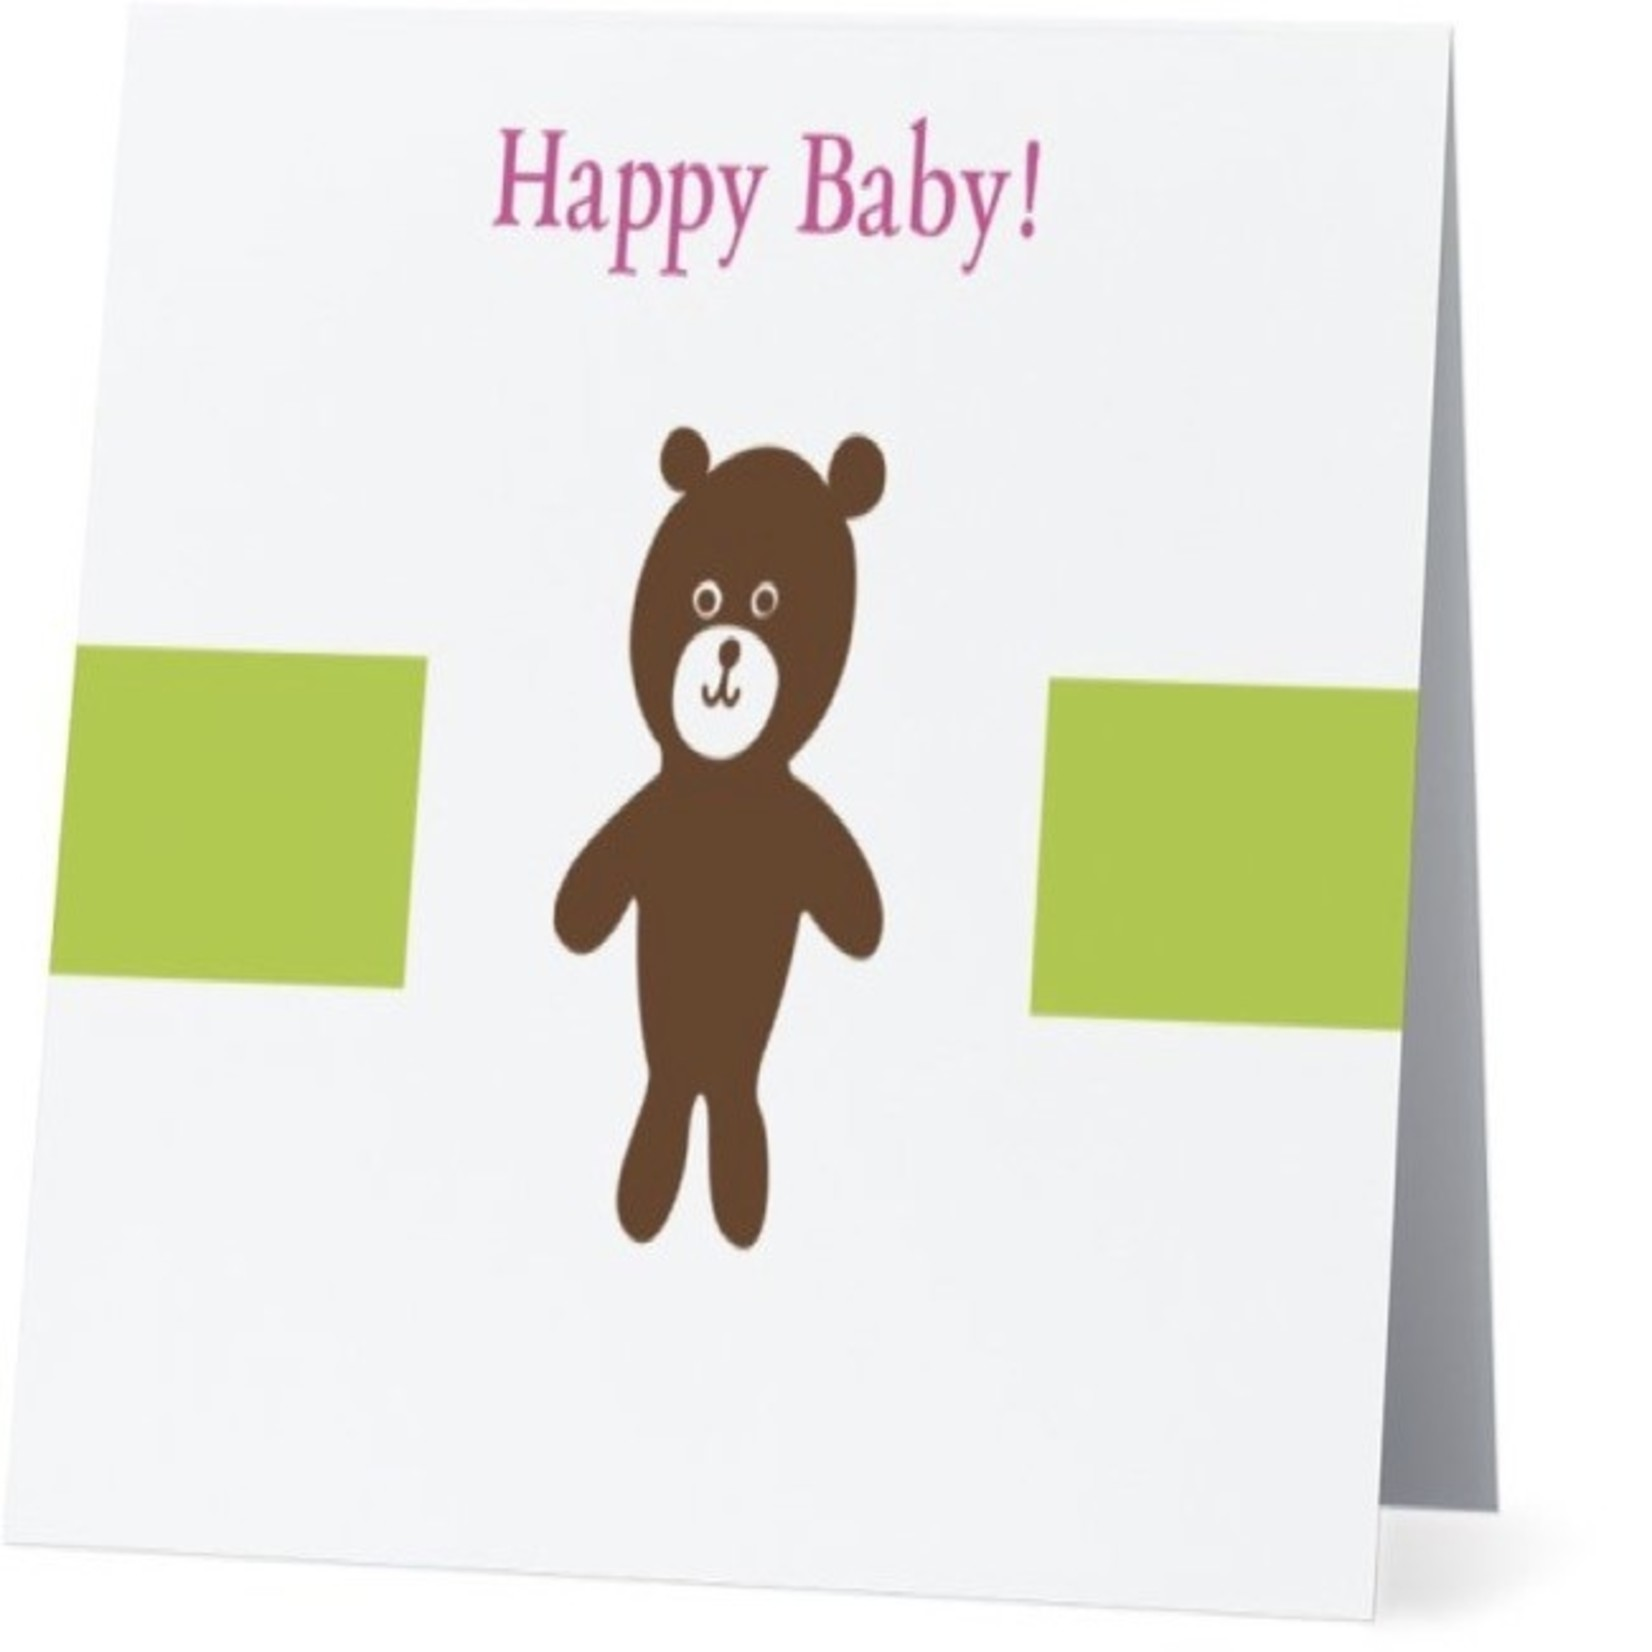 Bad Annie's Card #030 - Happy Baby